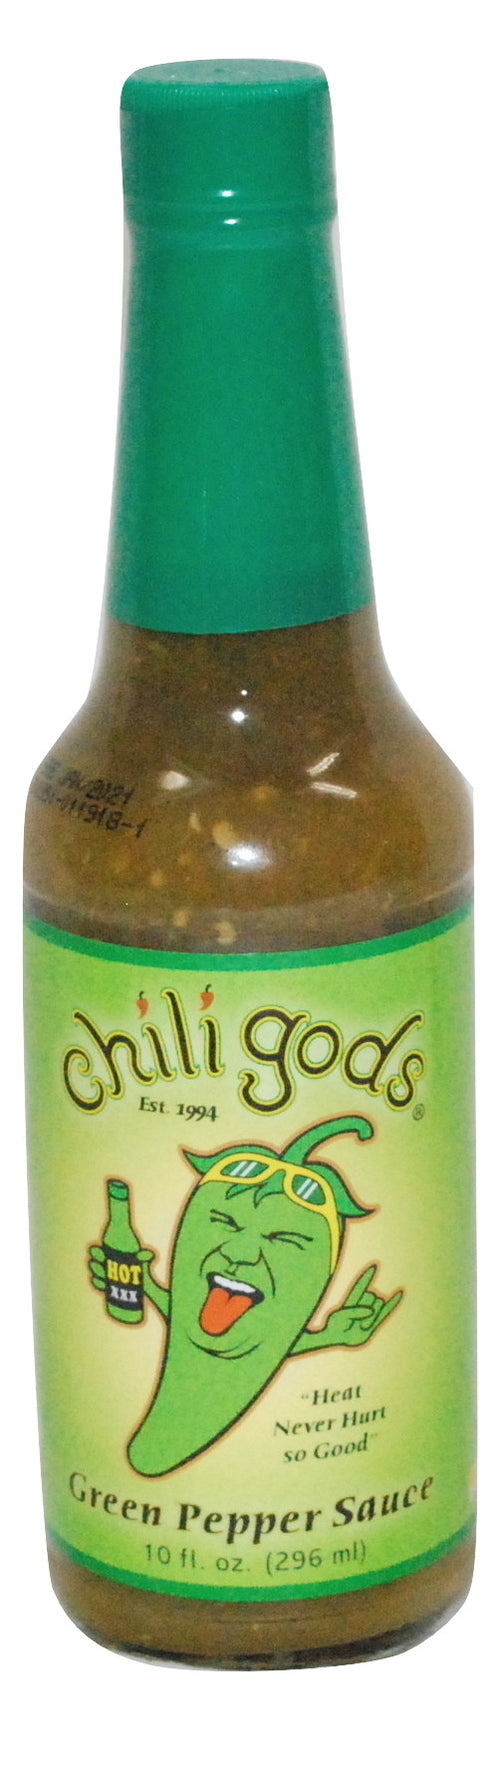 Chiligods Green Pepper Sauce